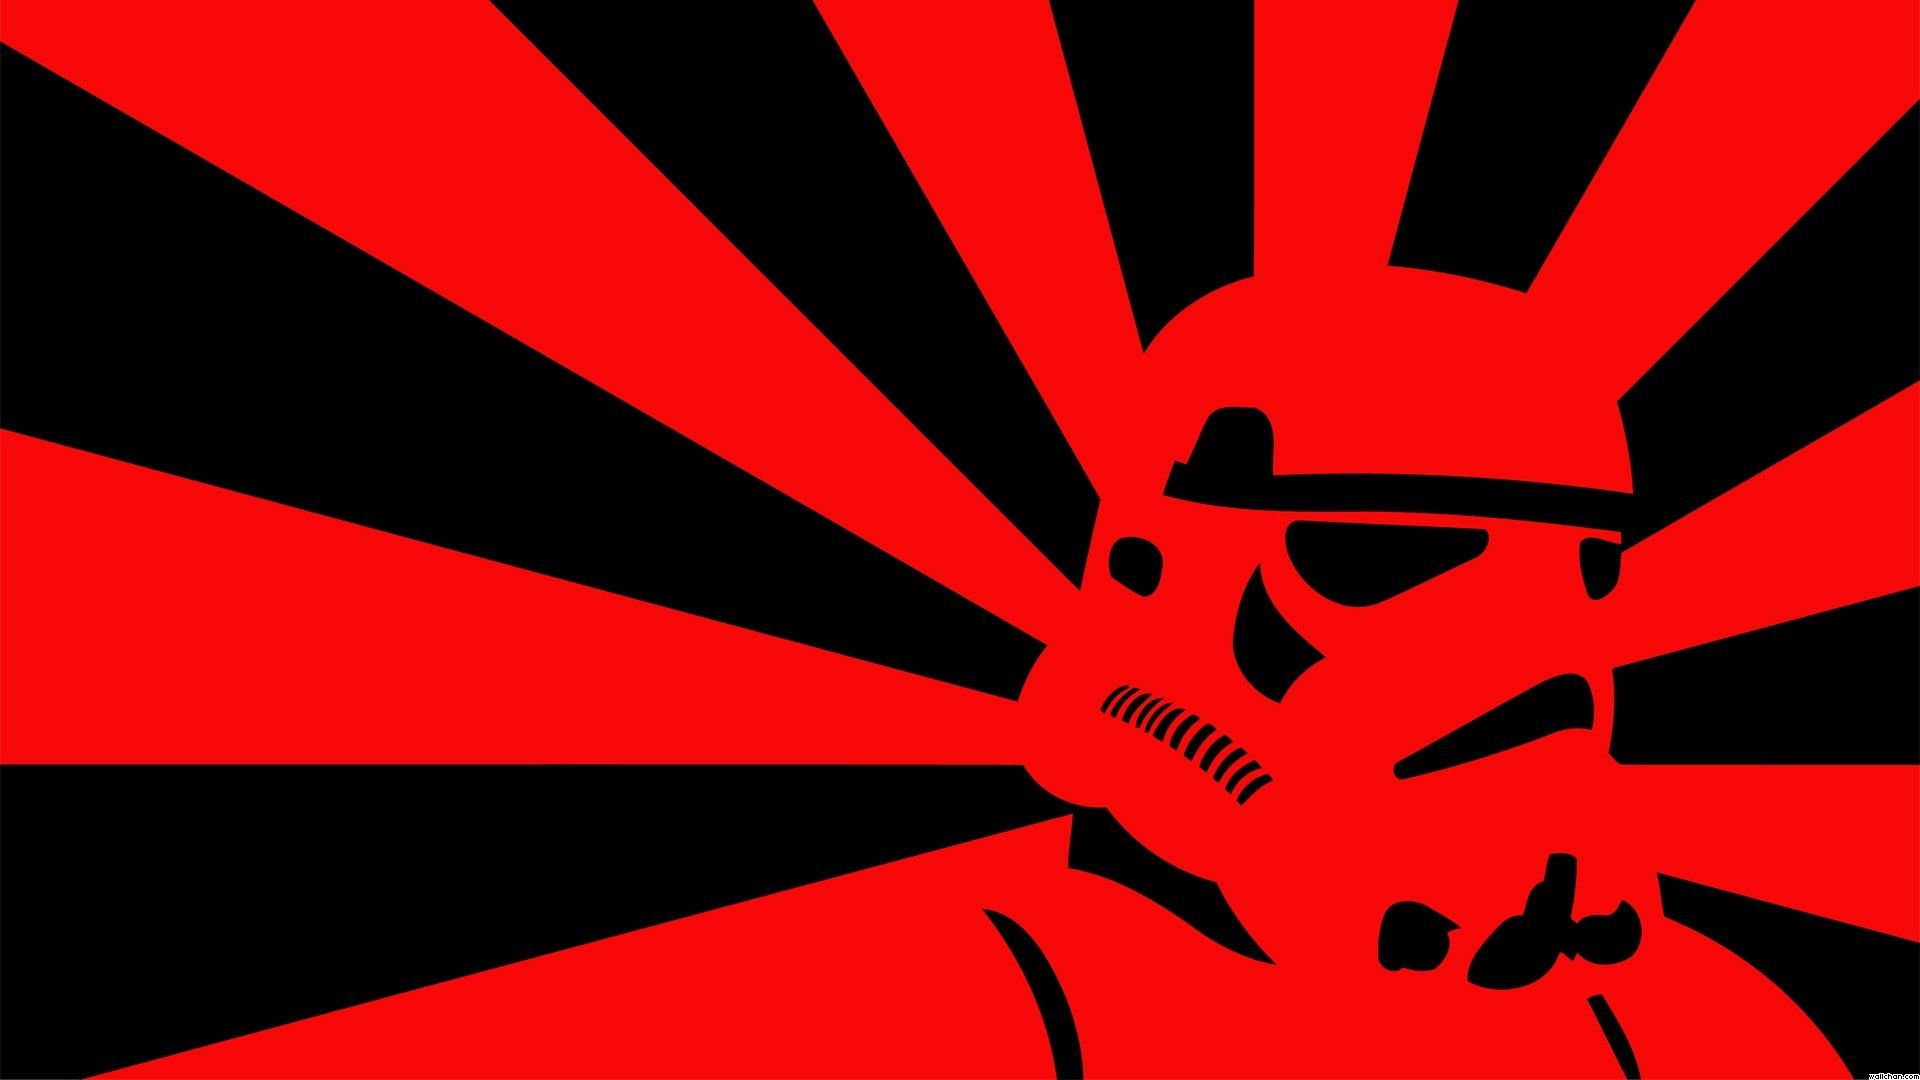 Star Wars Pop Art Wallpapers Top Free Star Wars Pop Art Backgrounds Wallpaperaccess